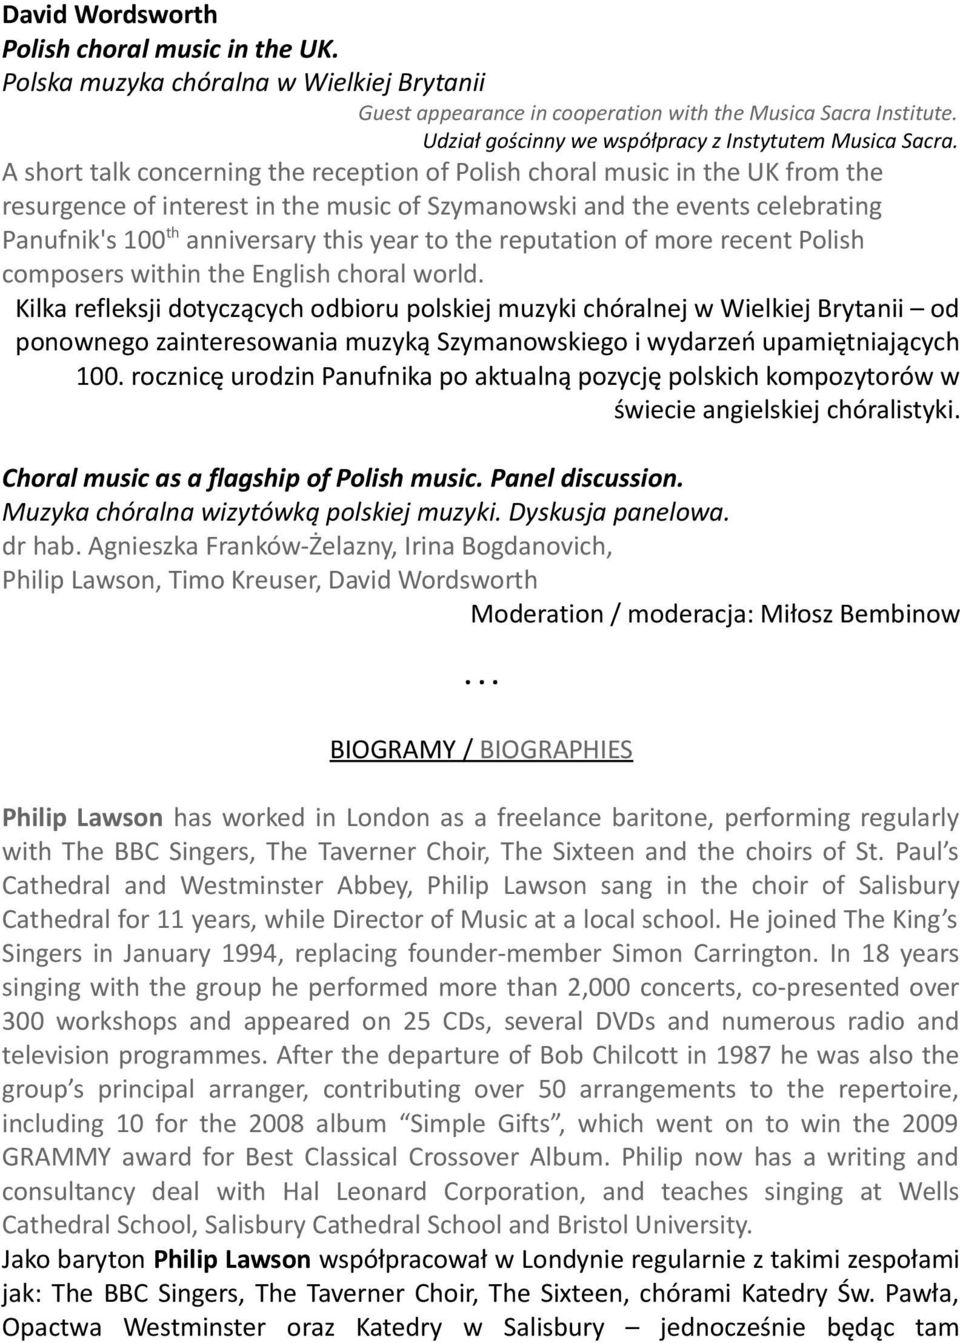 A short talk concerning the reception of Polish choral music in the UK from the resurgence of interest in the music of Szymanowski and the events celebrating Panufnik's 100th anniversary this year to